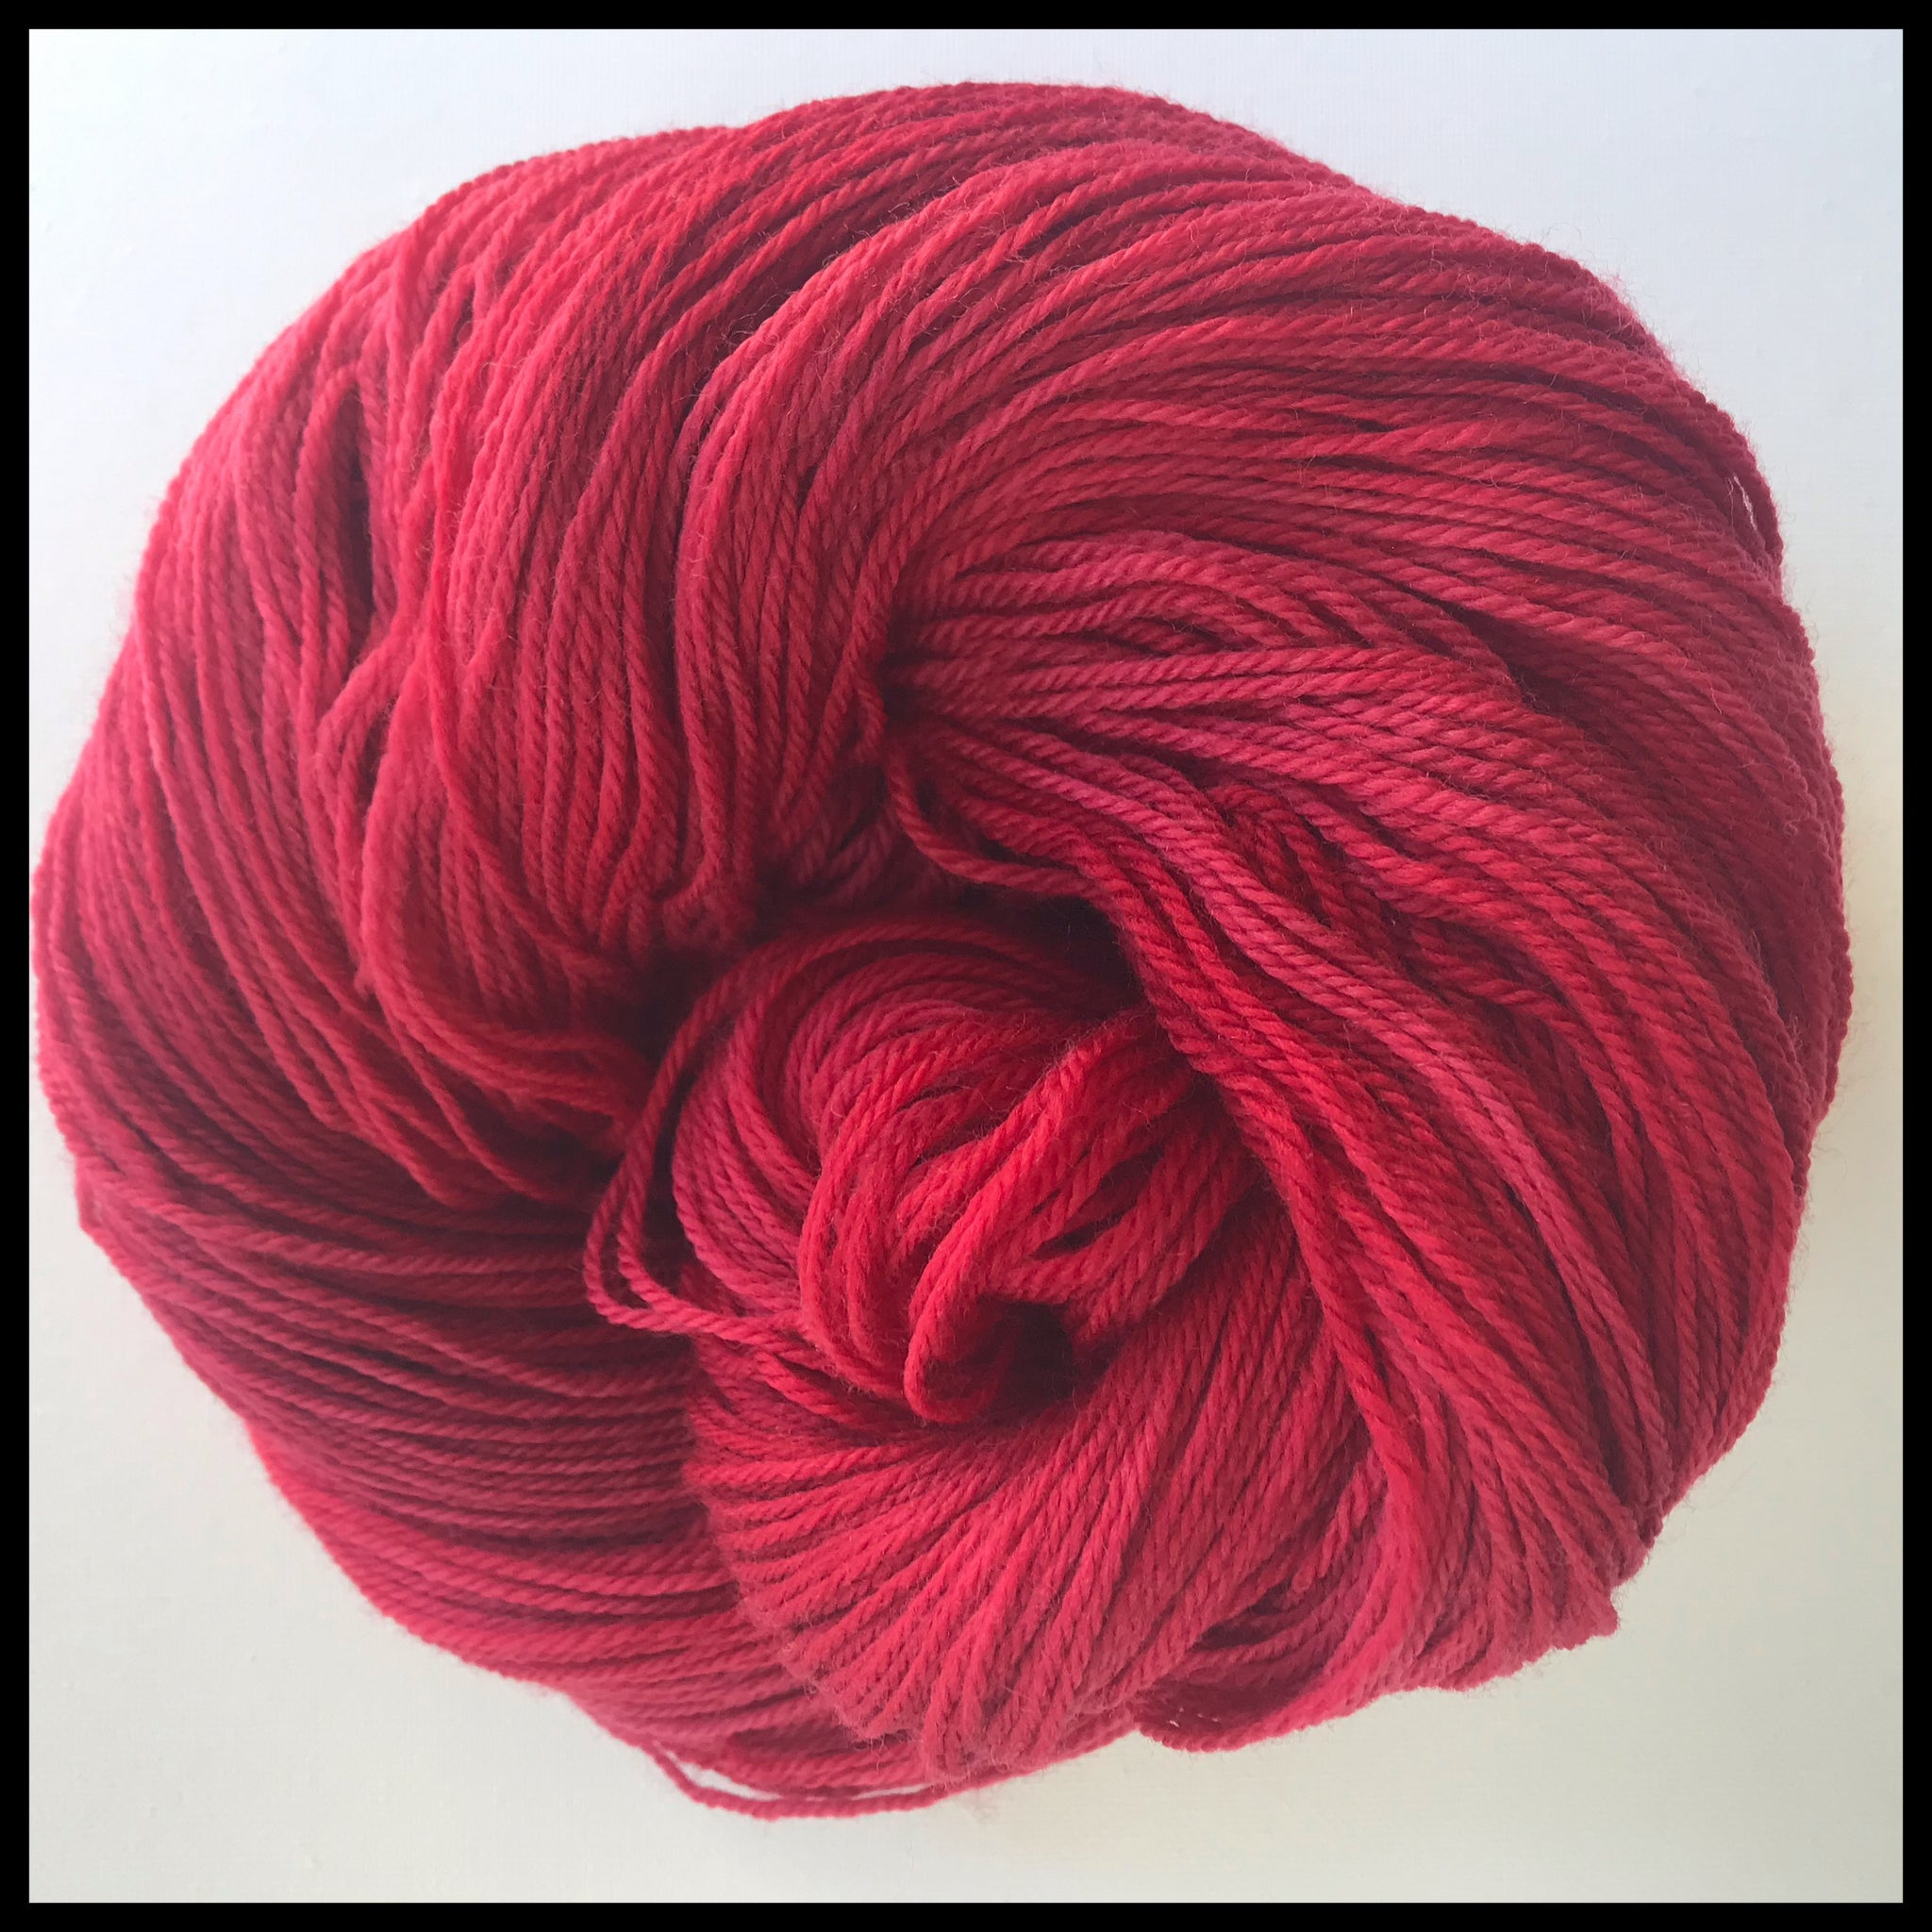 Team spirit college school color yarn Crimson Red  USC Cardinal Red